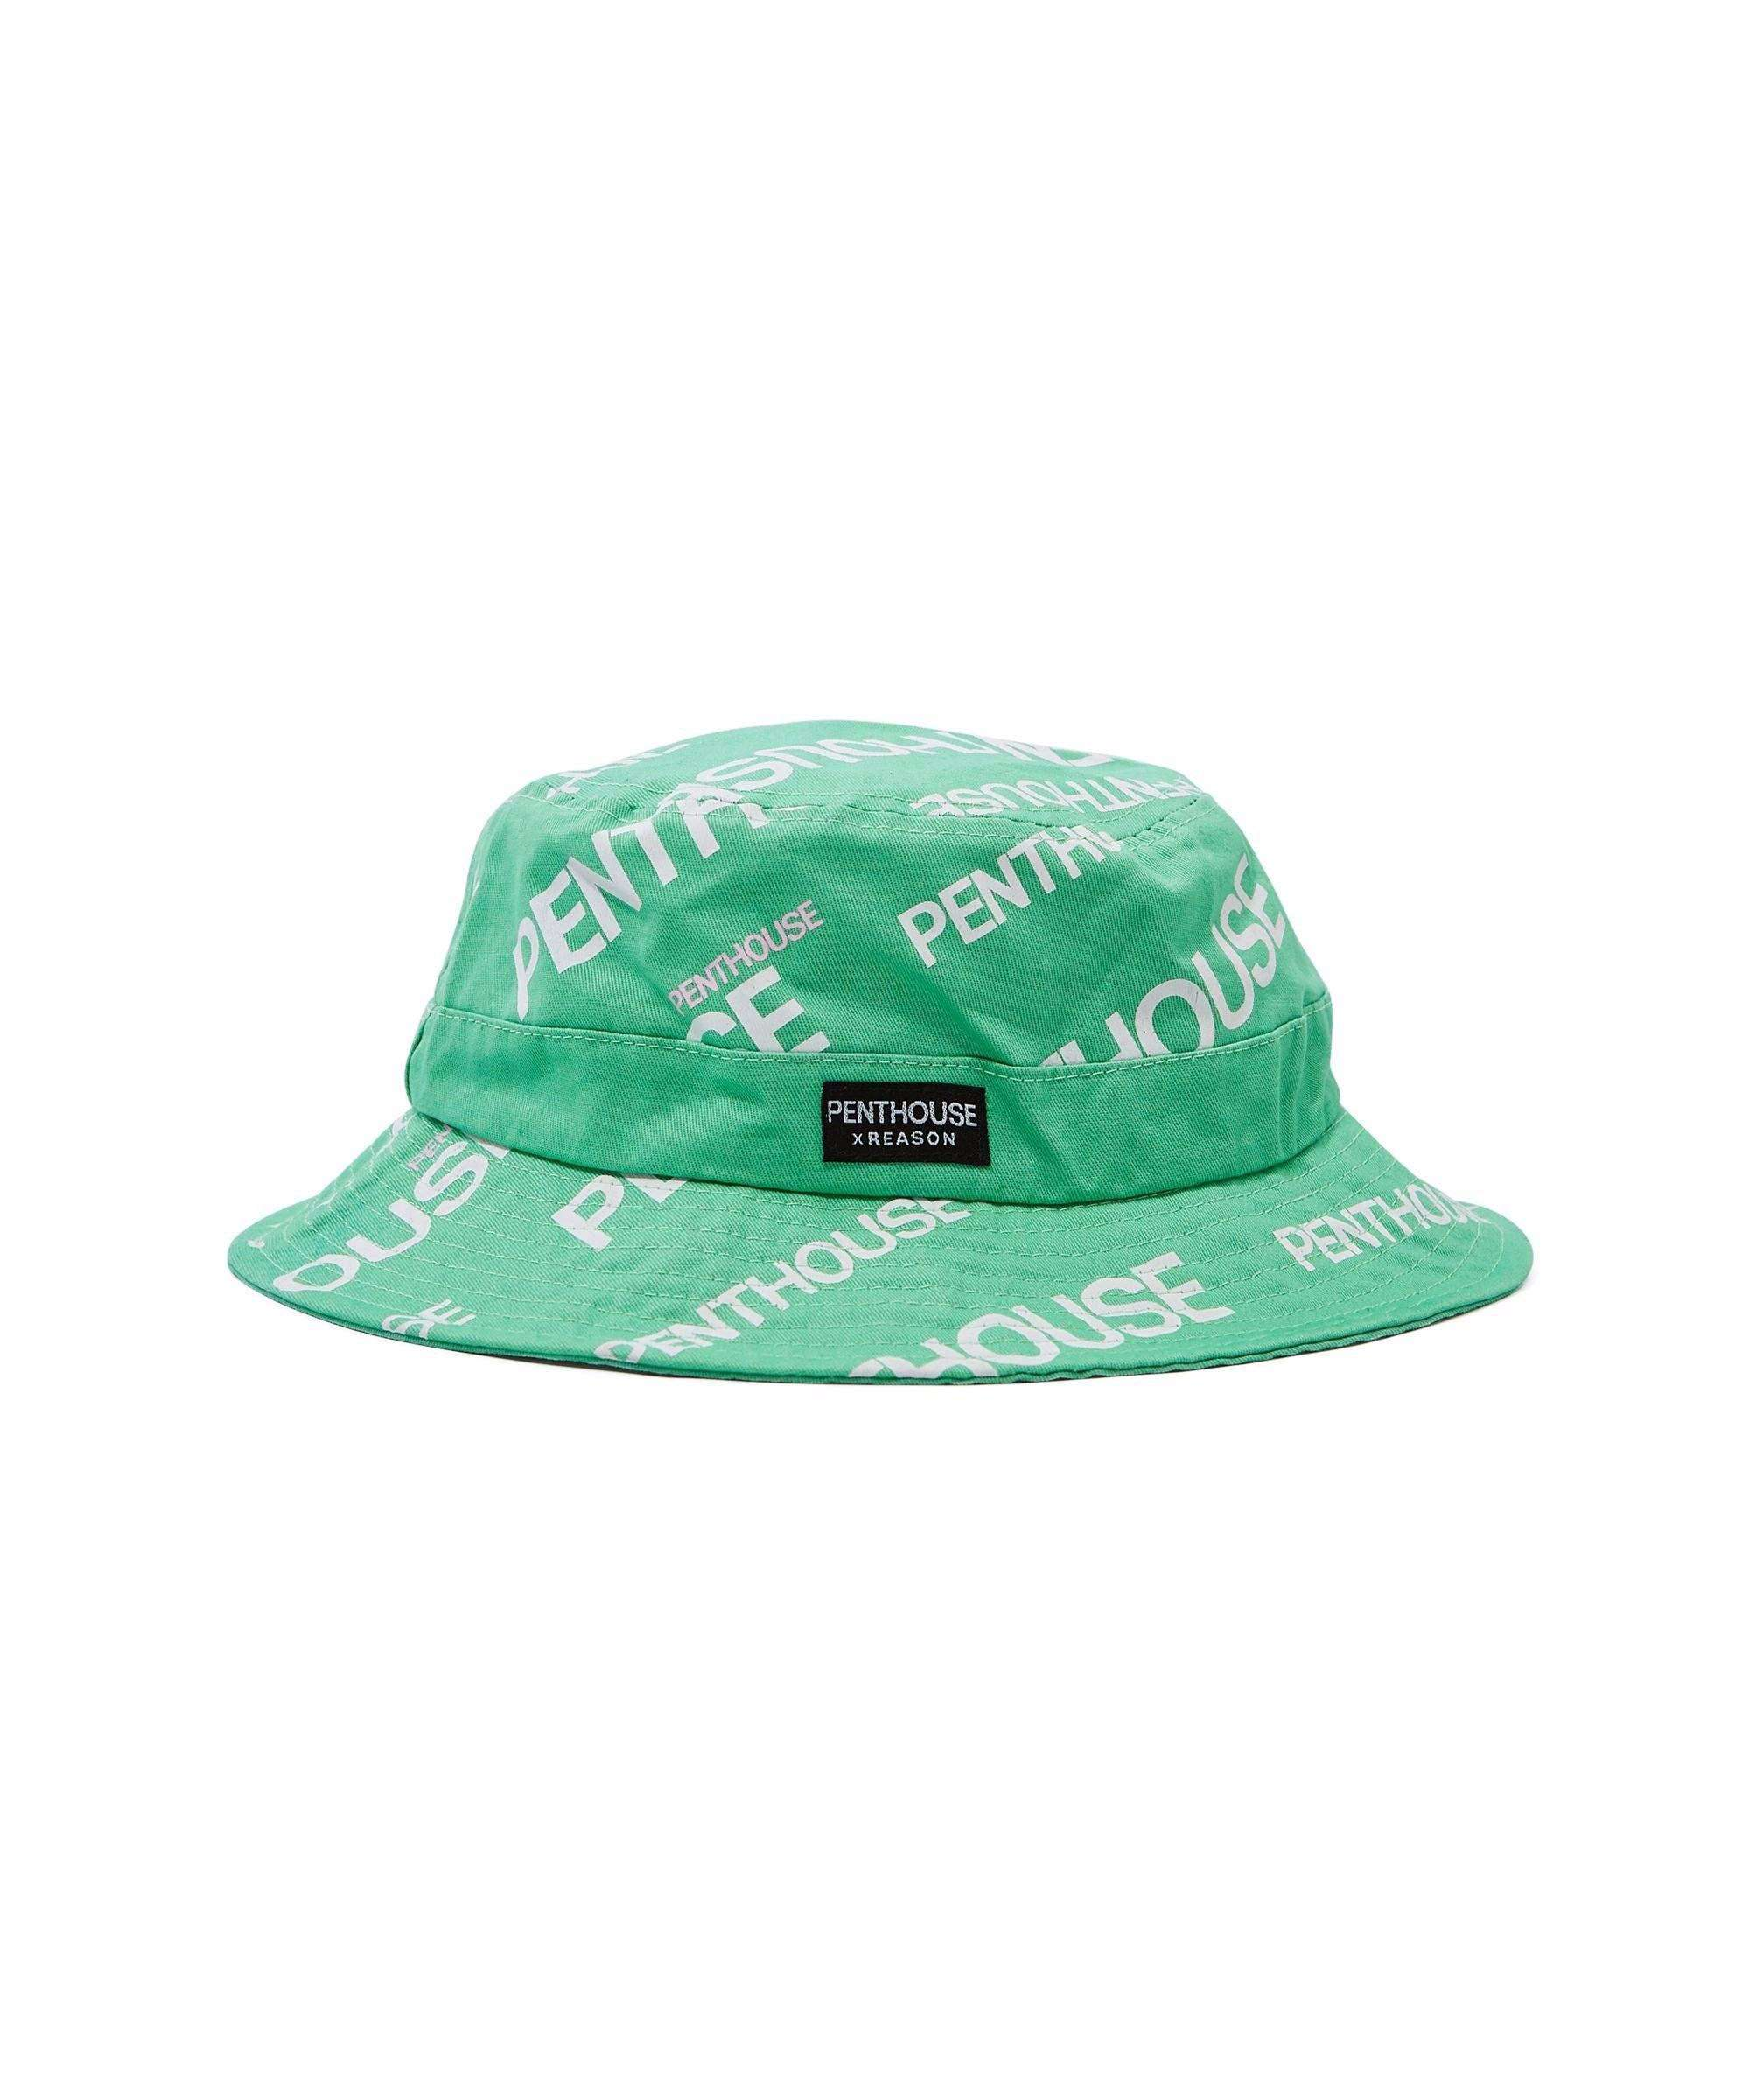 PENTHOUSE LOGO BUCKET HAT Reason Clothing